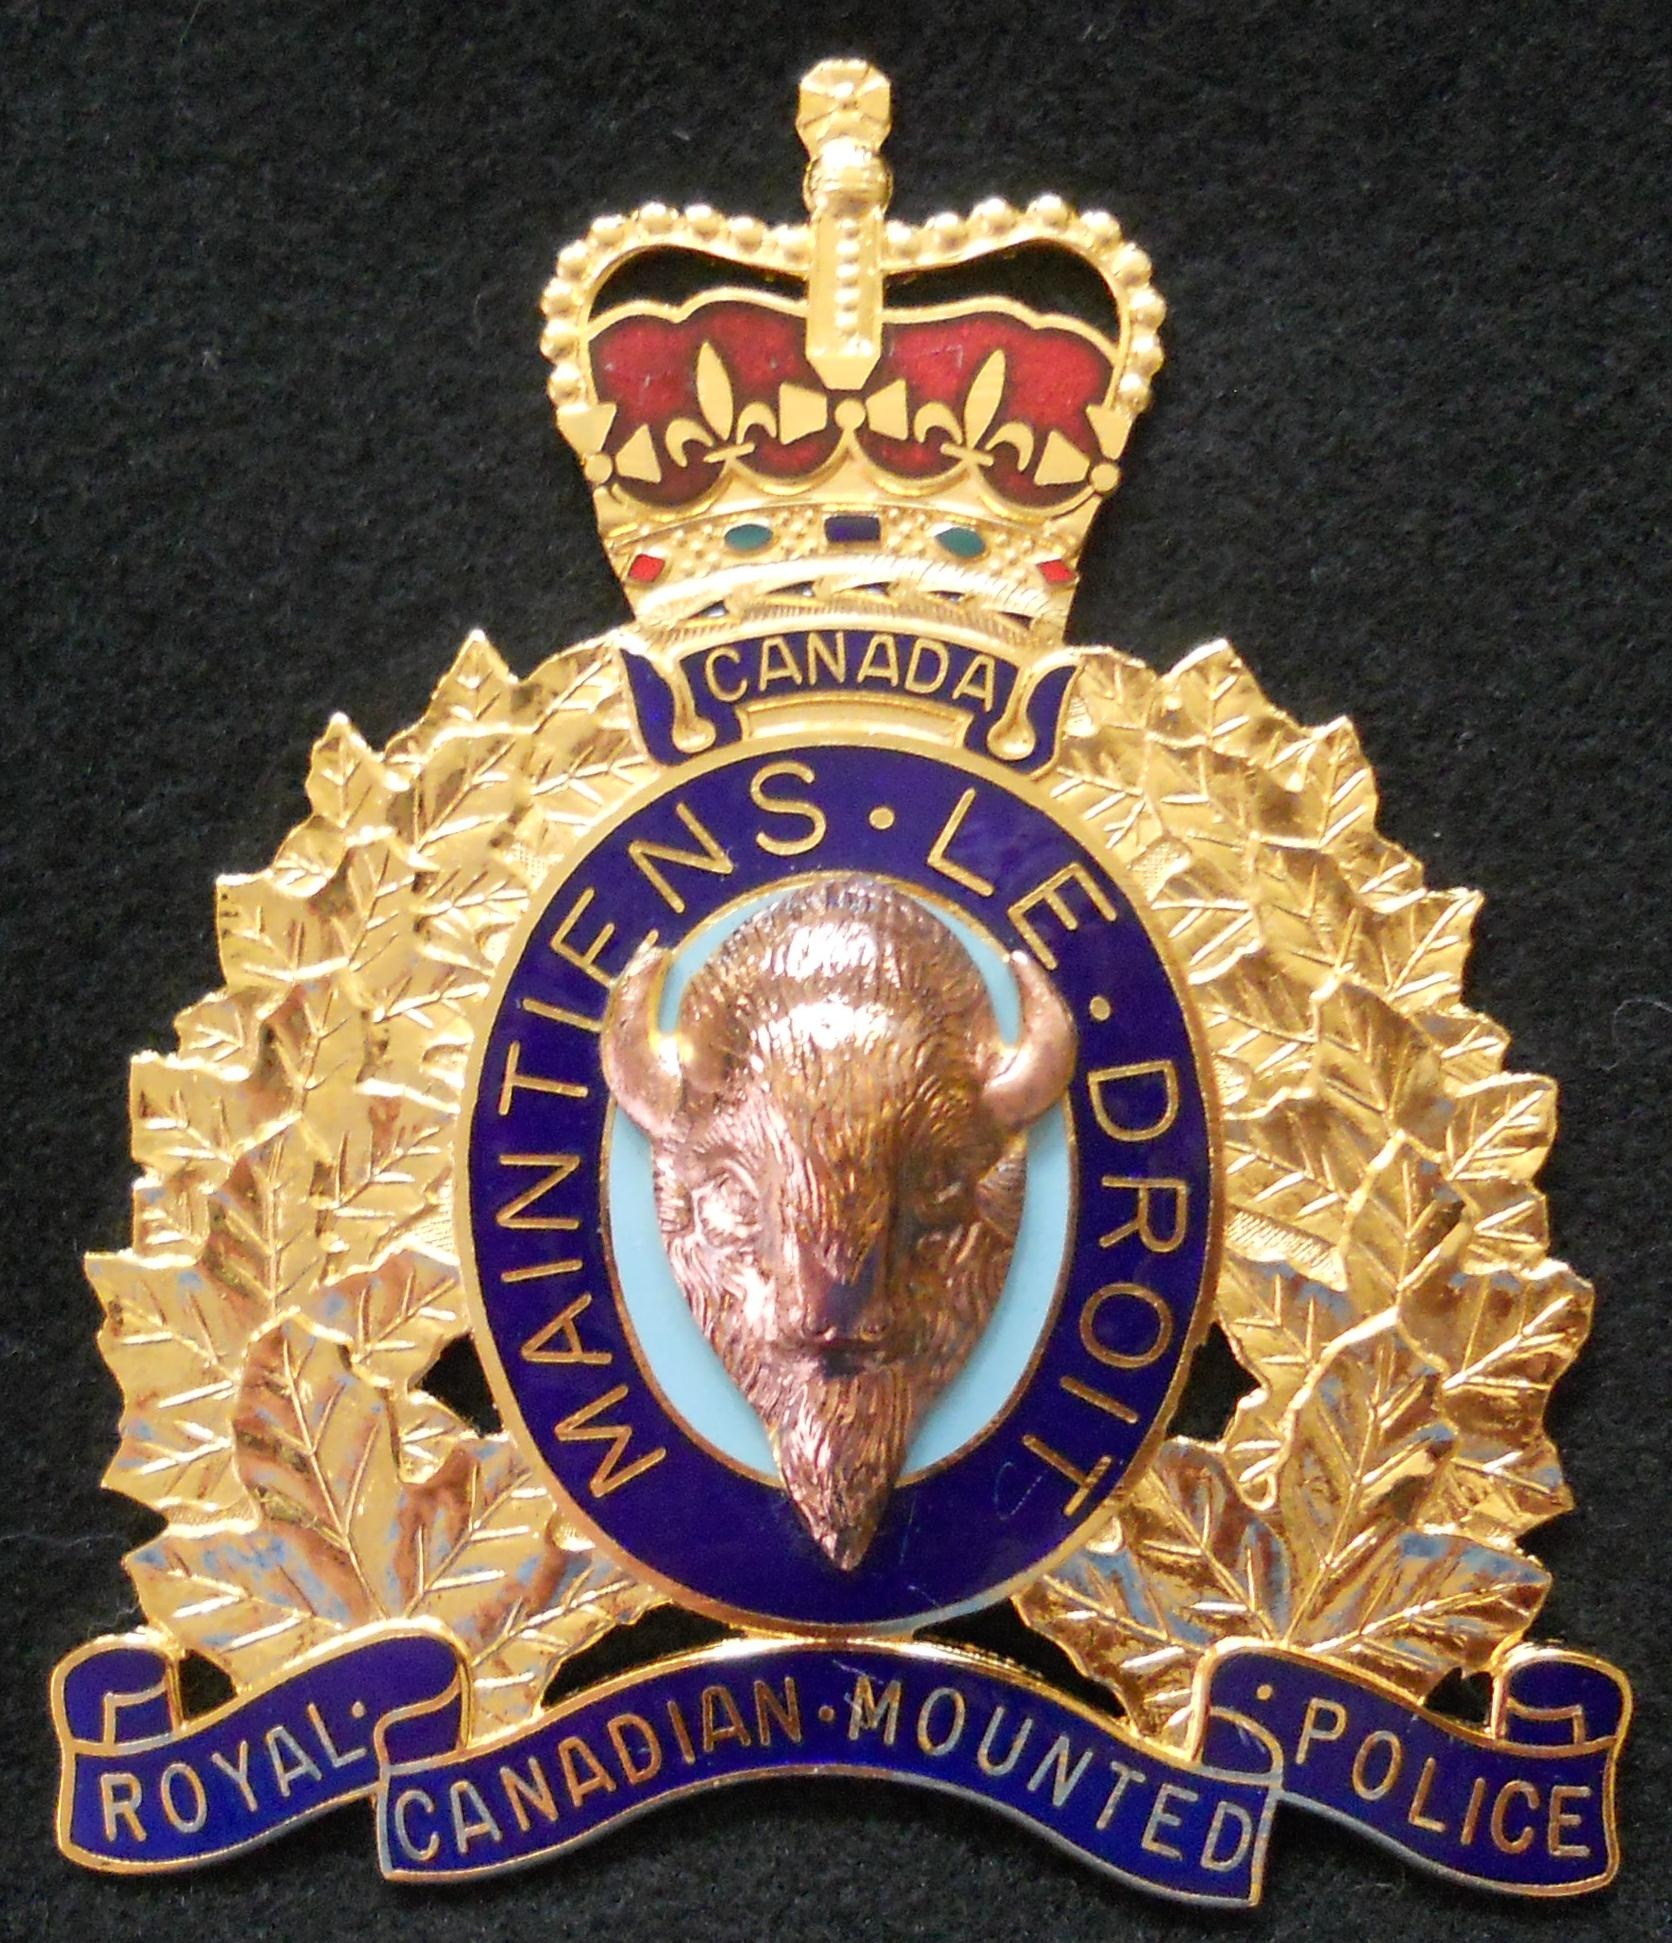 OFFICER INVOLVED SHOOTING IN SHERWOOD PARK